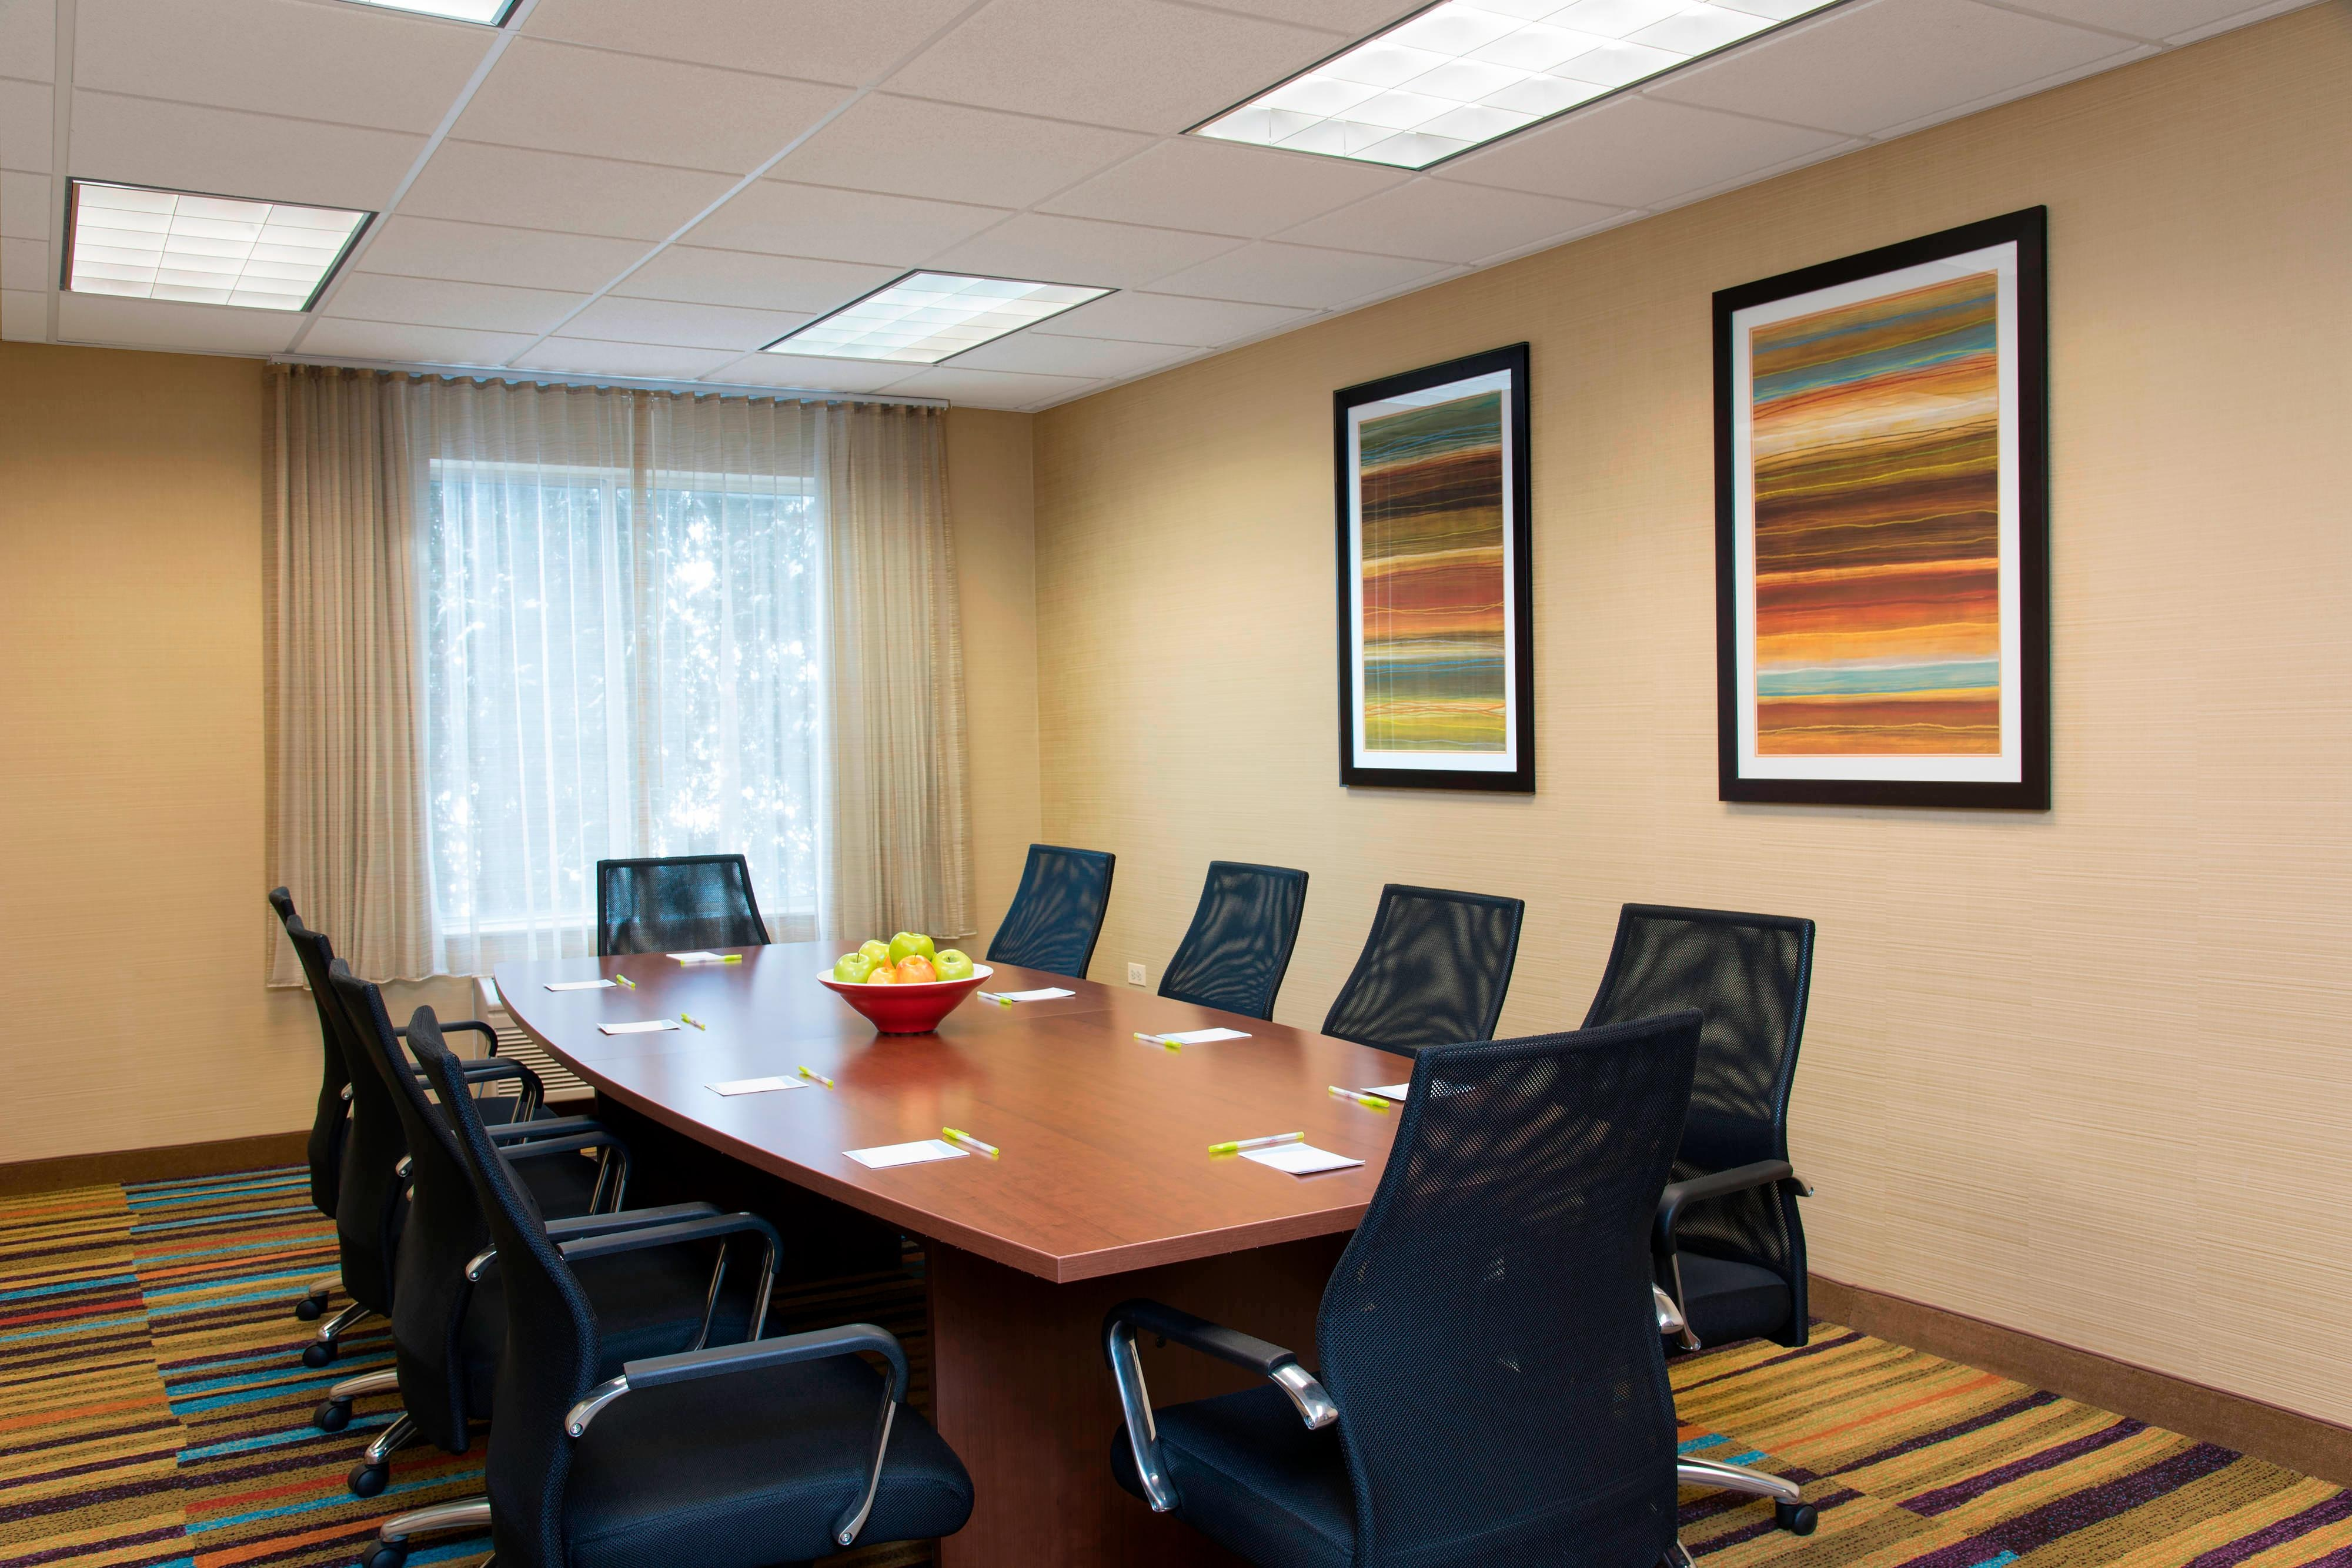 st. charles meeting rooms